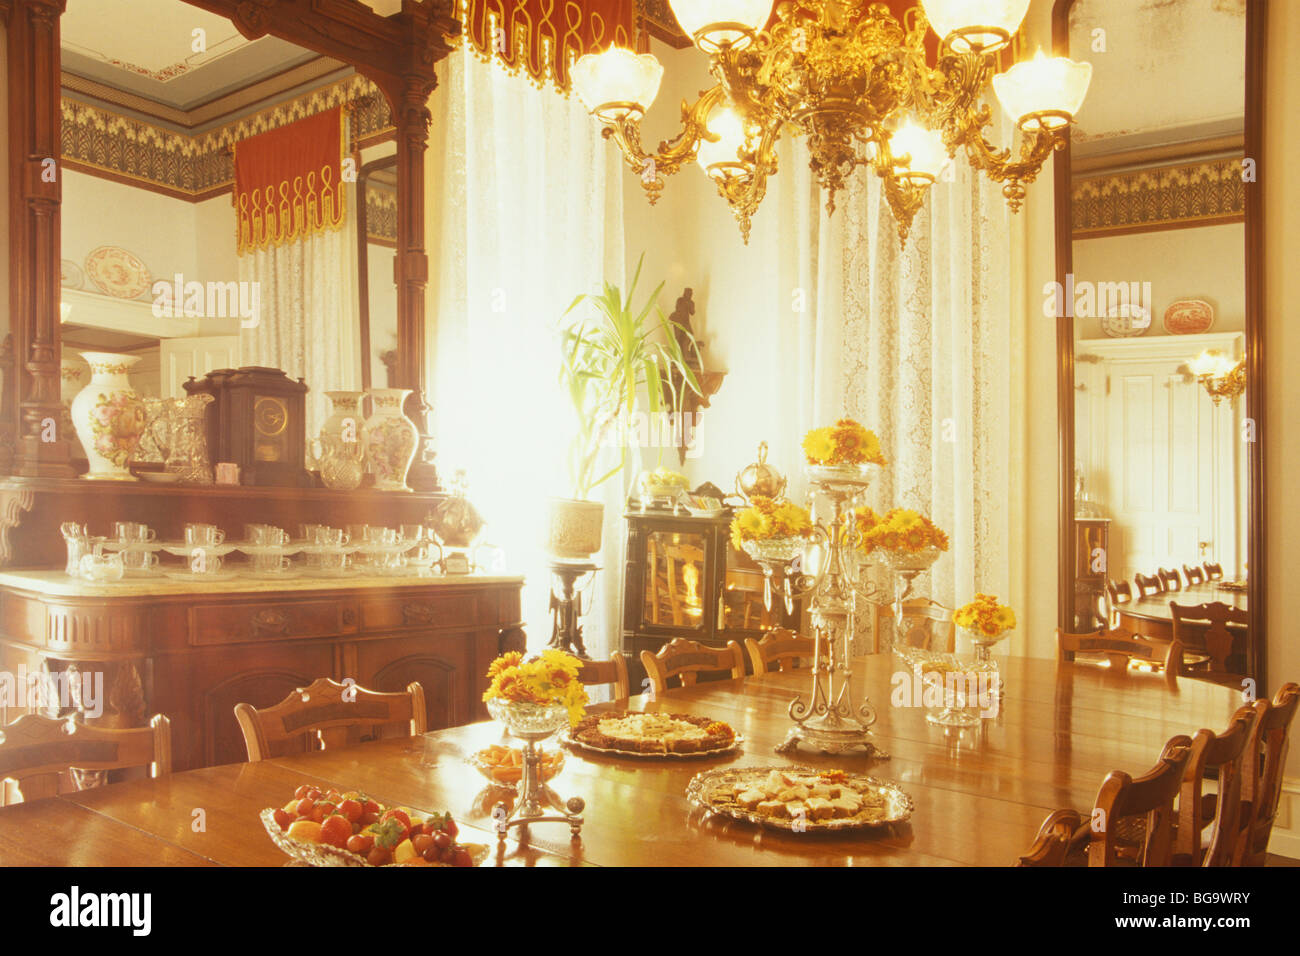 Dining Room Set For Tea, Mainstay Inn, Cape May, New Jersey   Stock